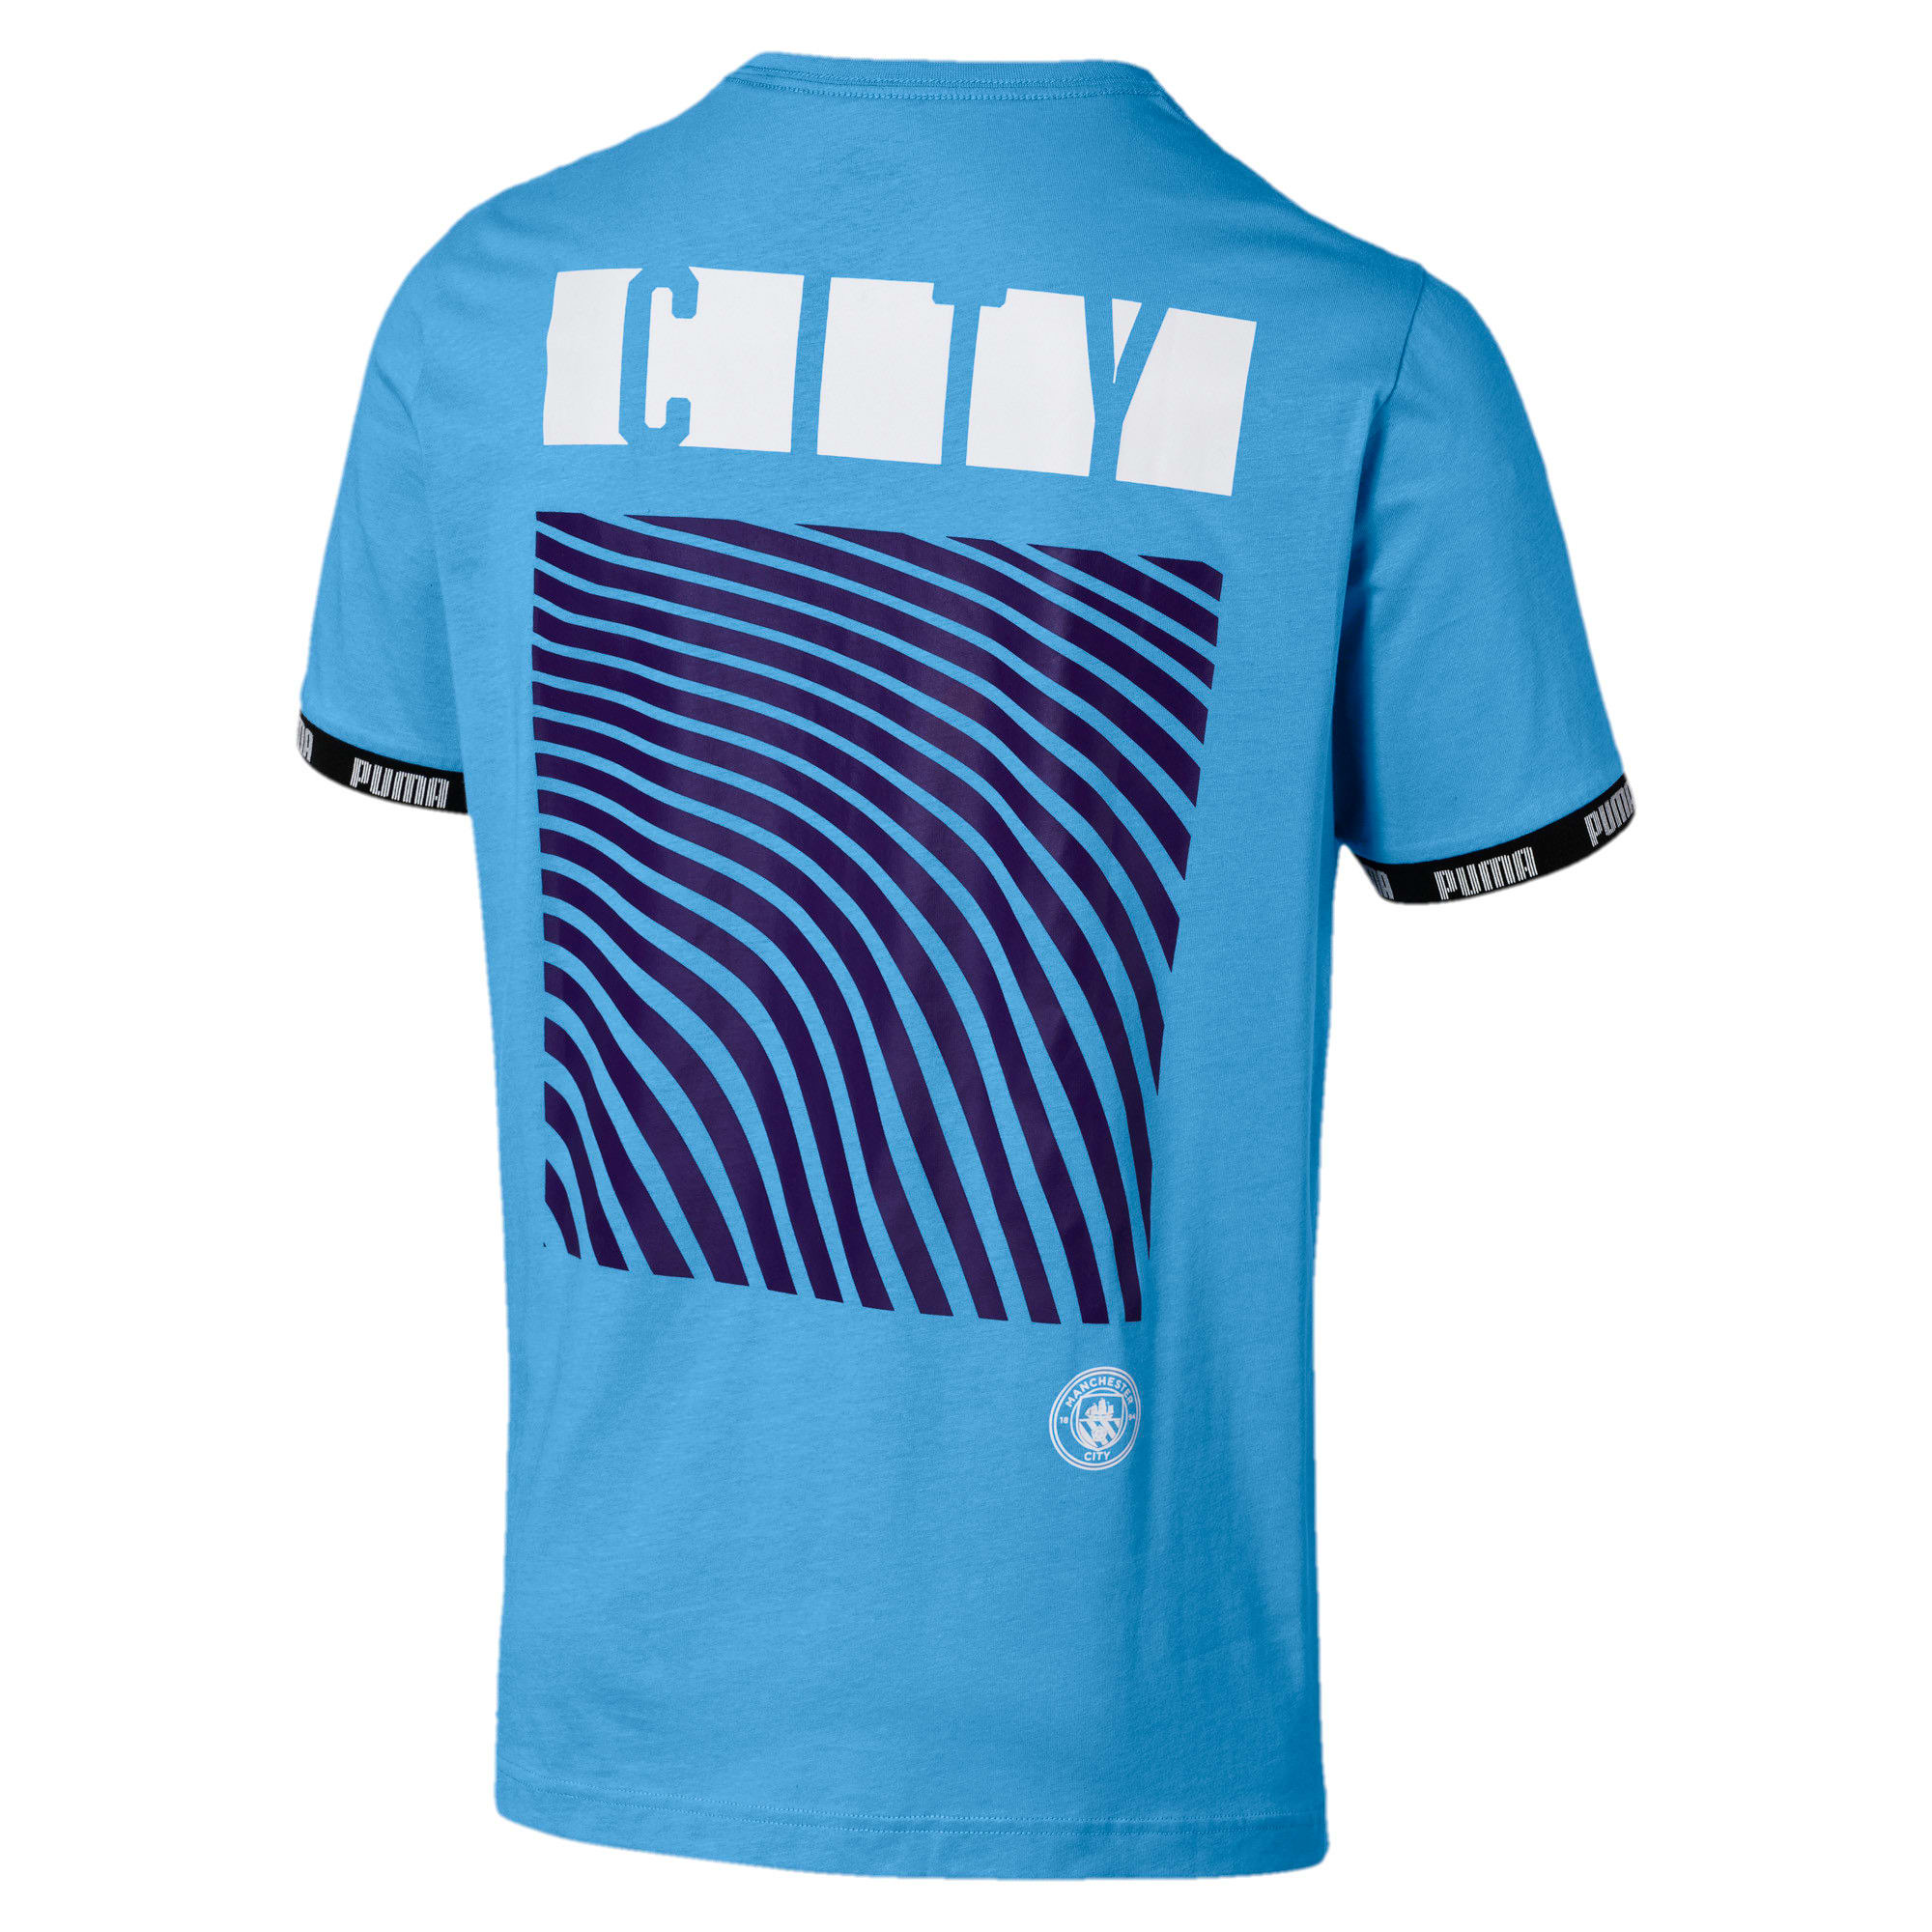 Anteprima 2 di Man City Men's Football Culture Tee, Team Light Blue, medio